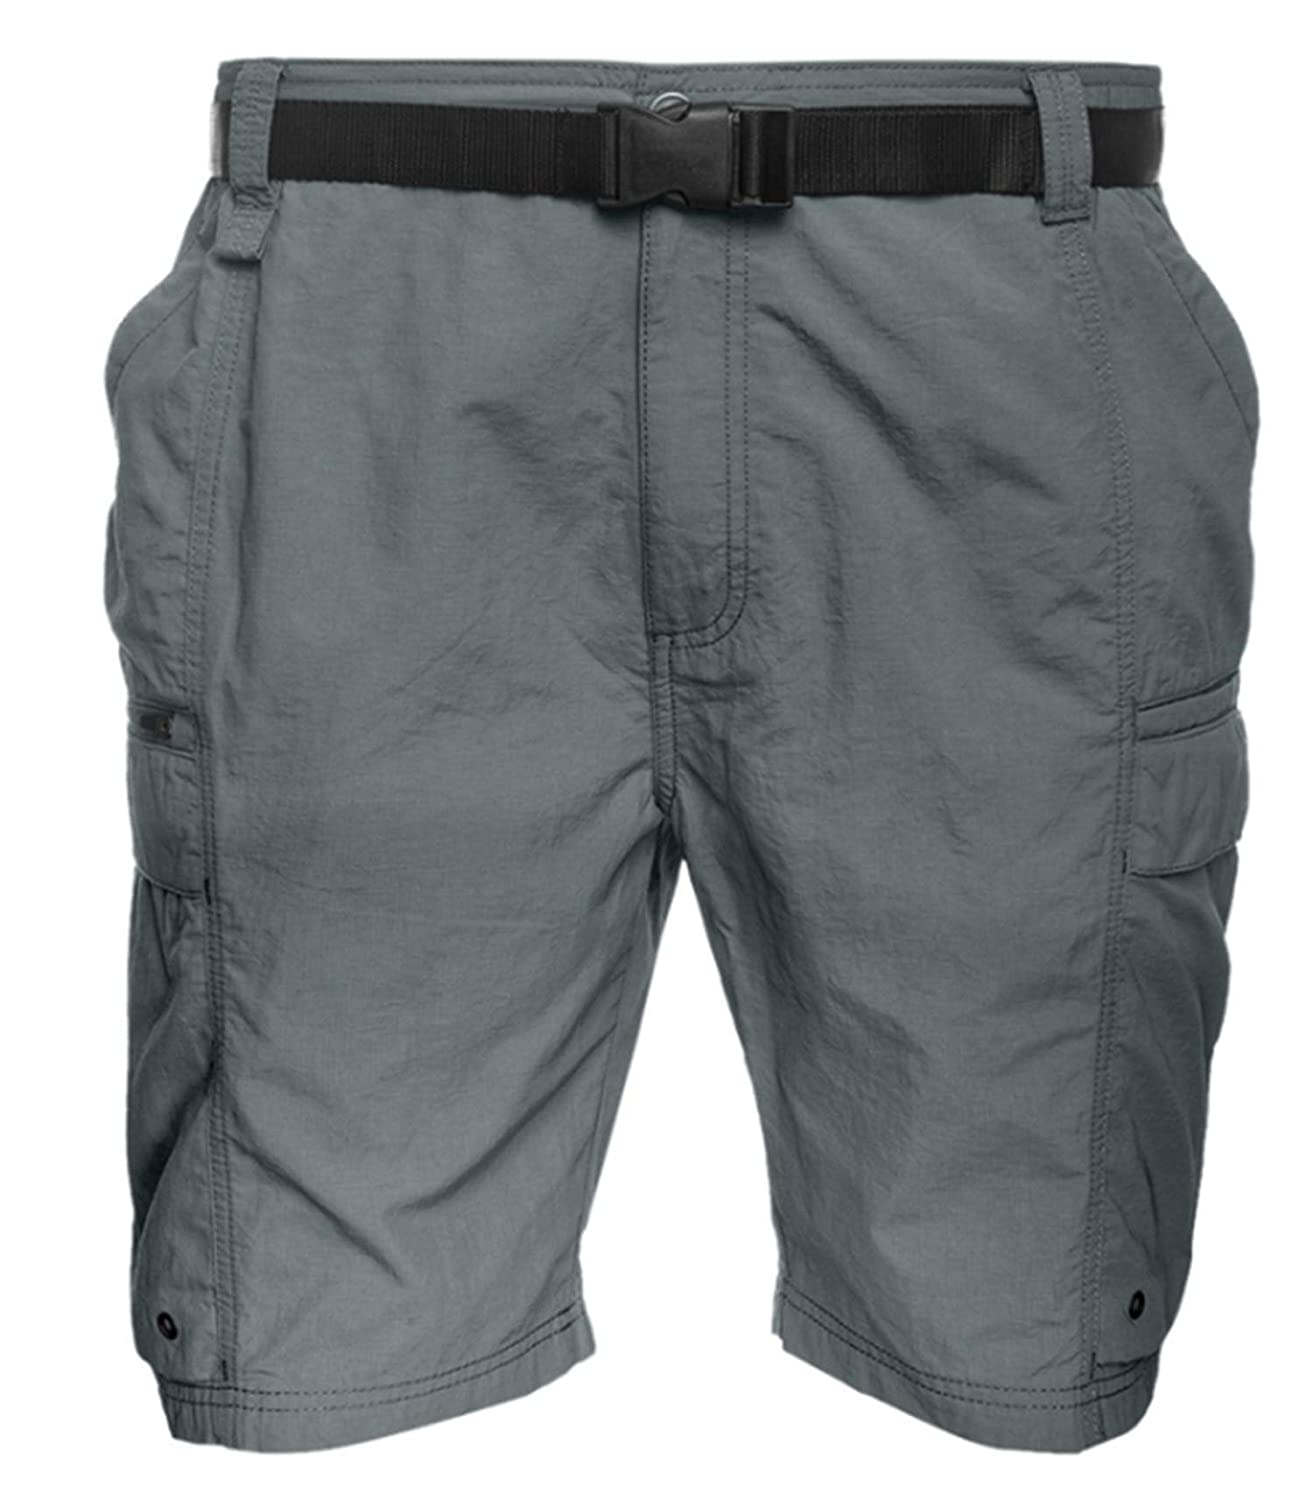 83ec974a68 Coleman Men's Outdoor Hiking Nylon Cargo Shorts (X-Large, Ironstone) |  Amazon.com